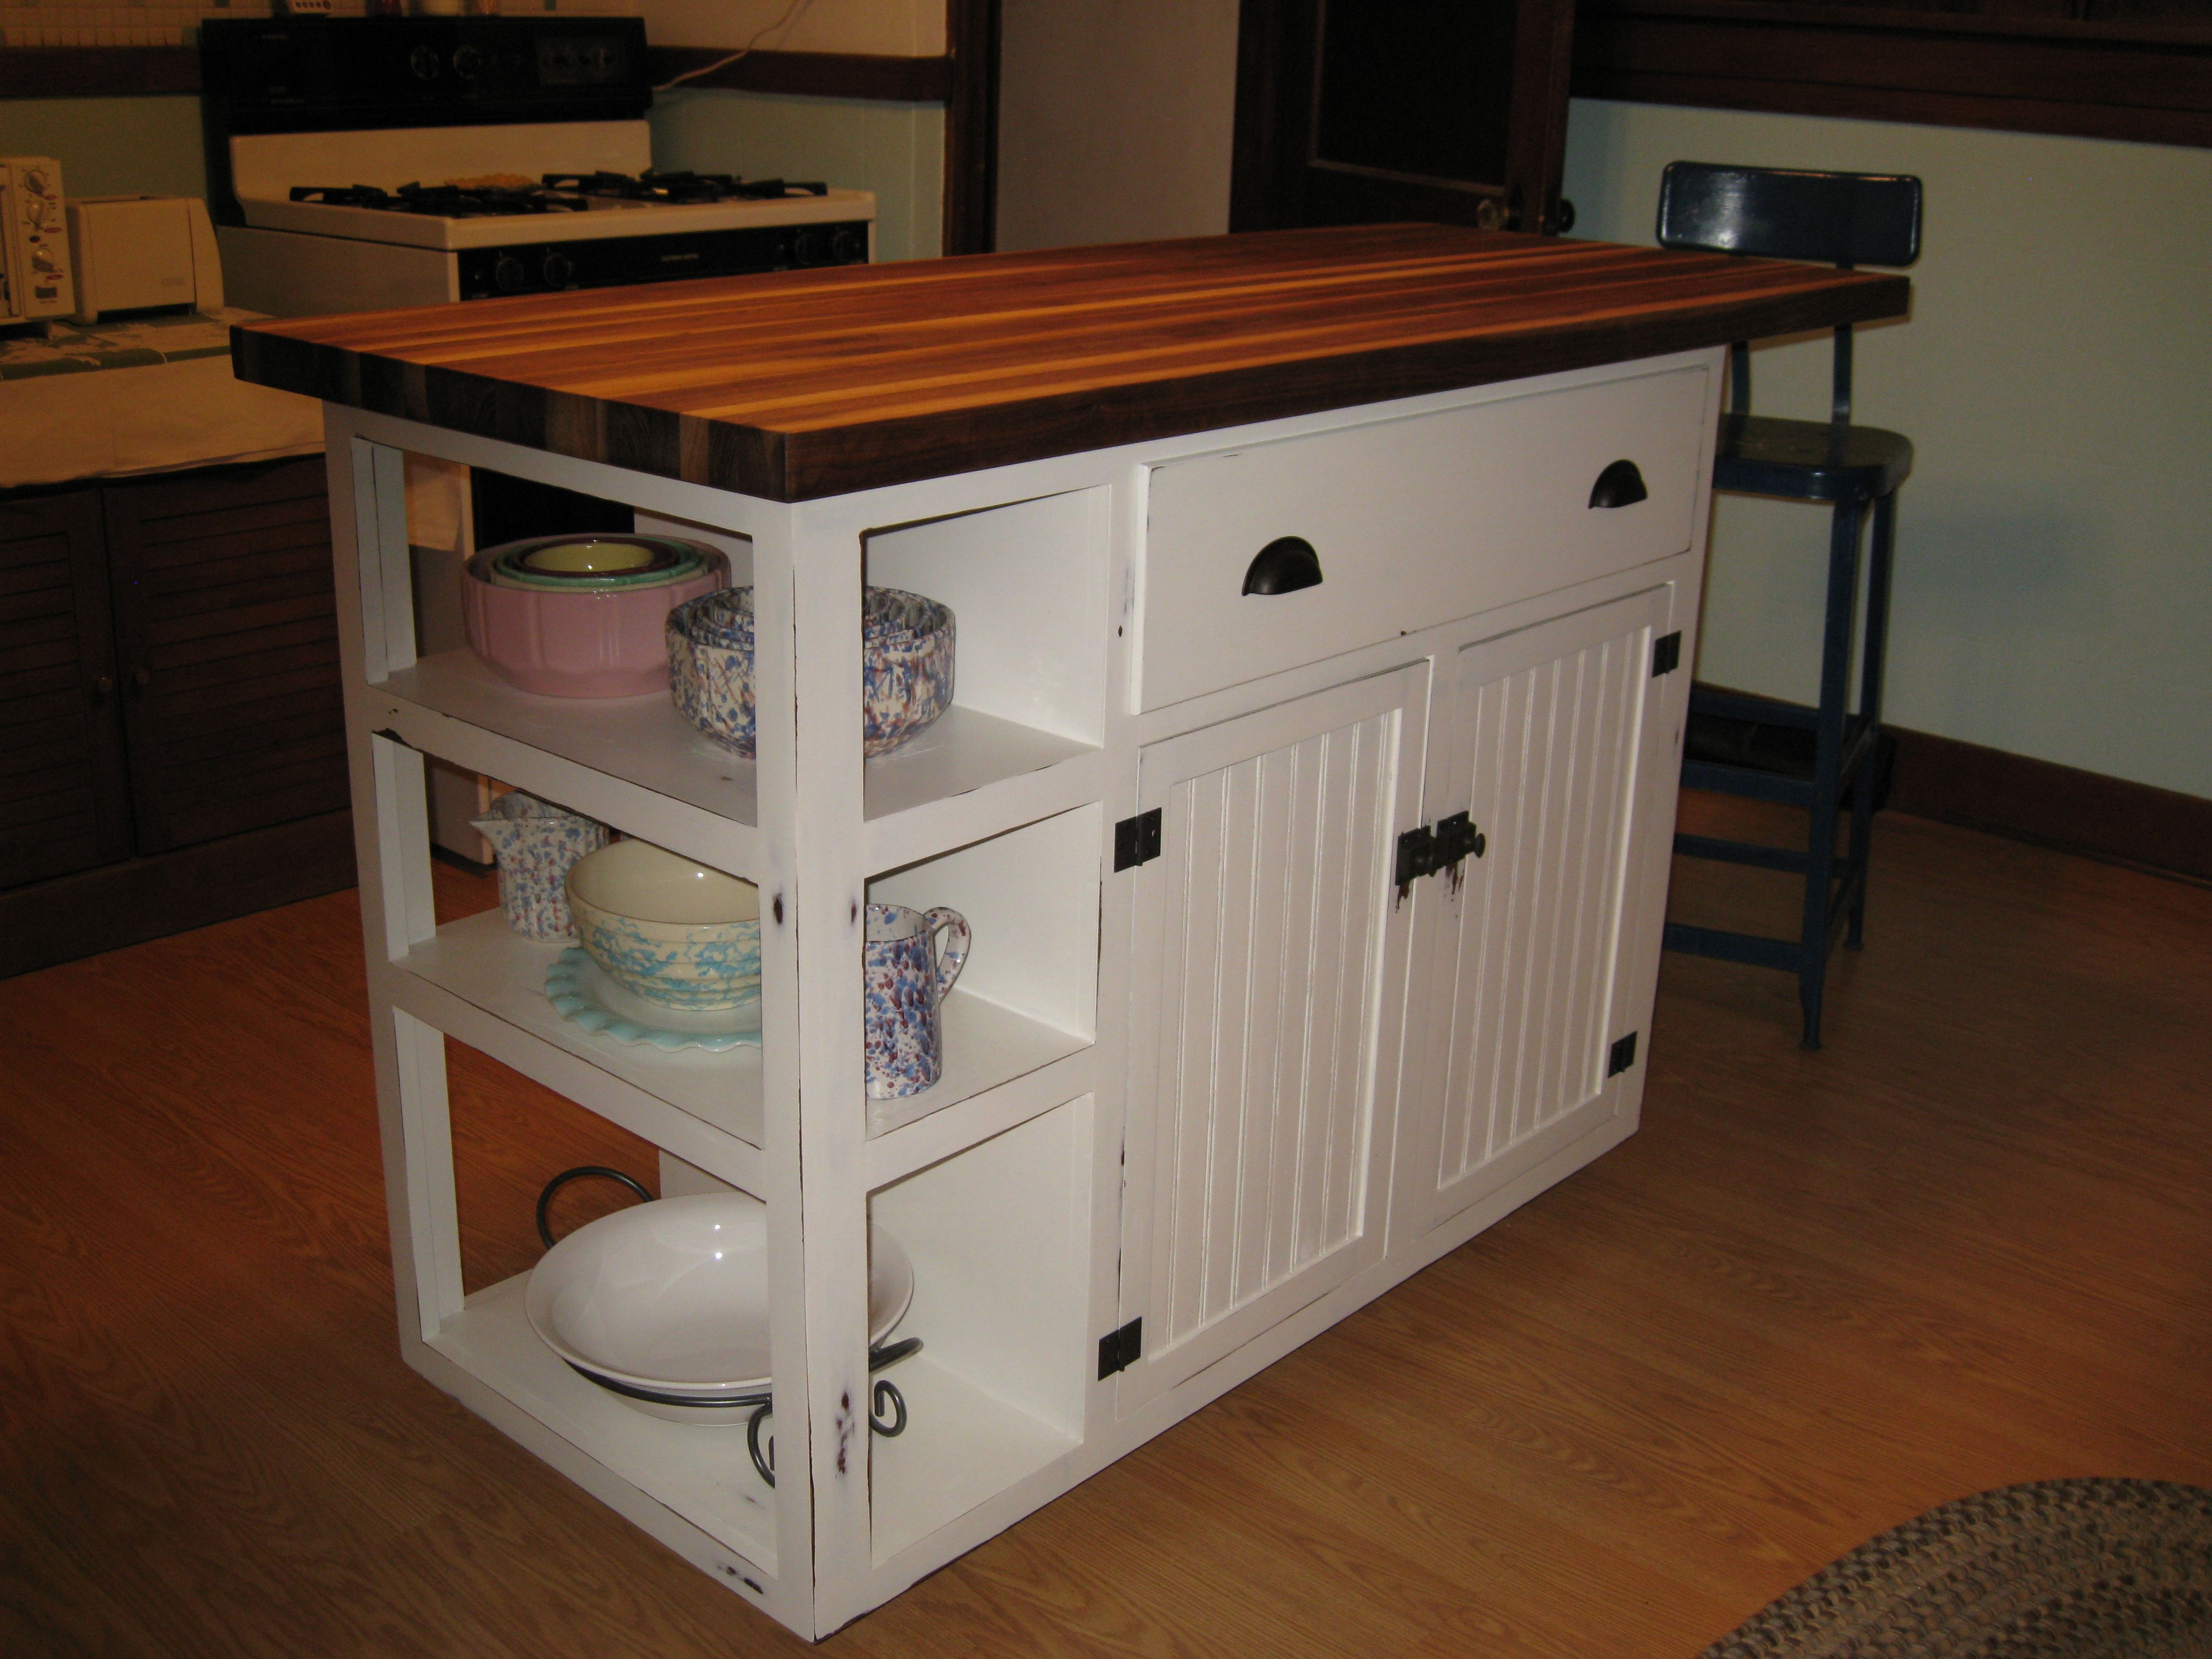 diy kitchen island kitchen island do it yourself home projects from ana white building on kitchen island ideas diy id=27251